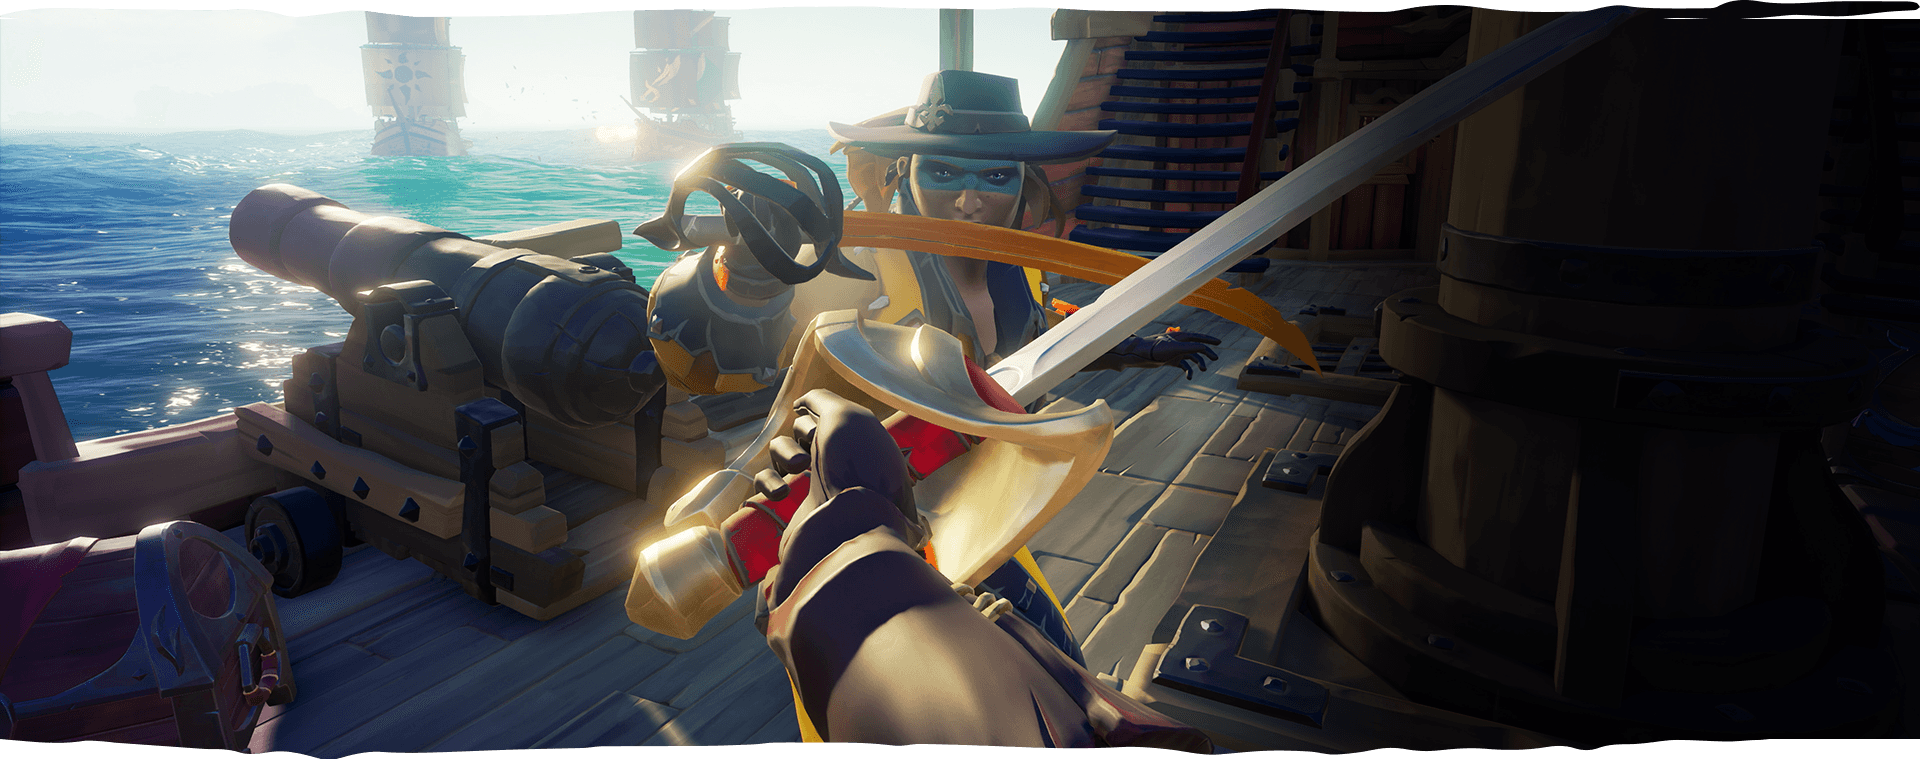 first person view of character sword fighting an enemy